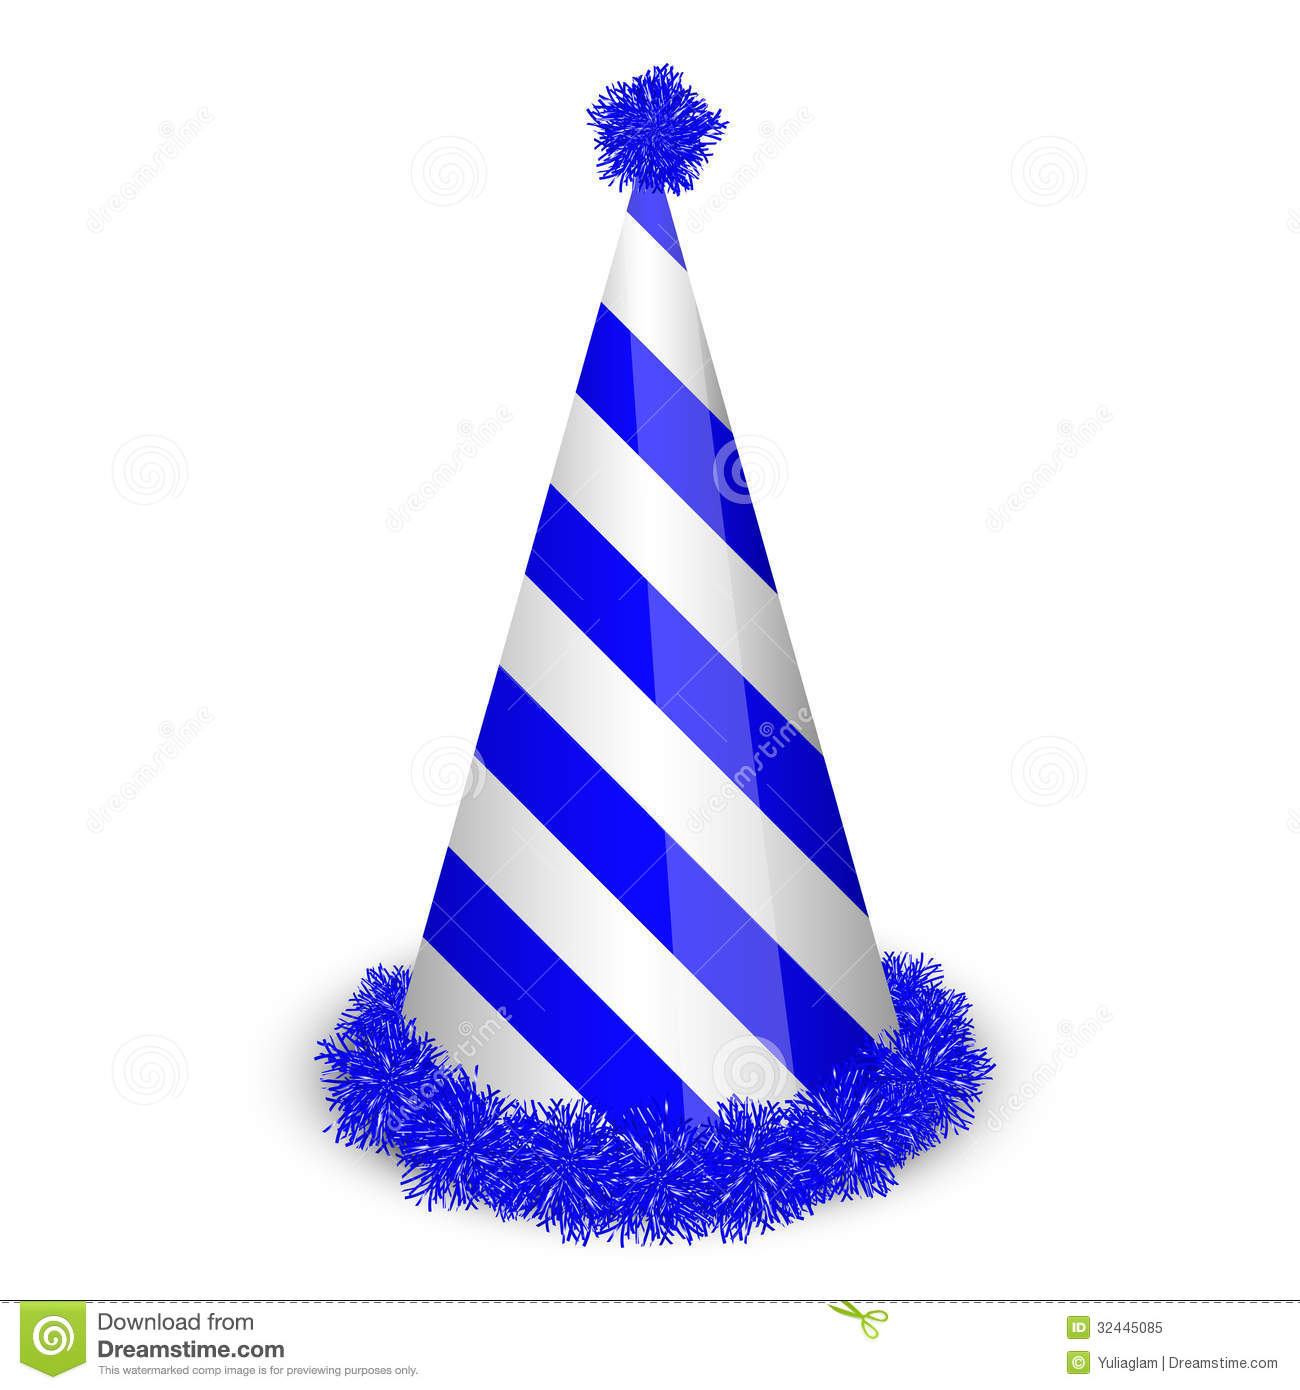 Blue Birthday Cap Royalty Free Stock Photo - Image: 32445085